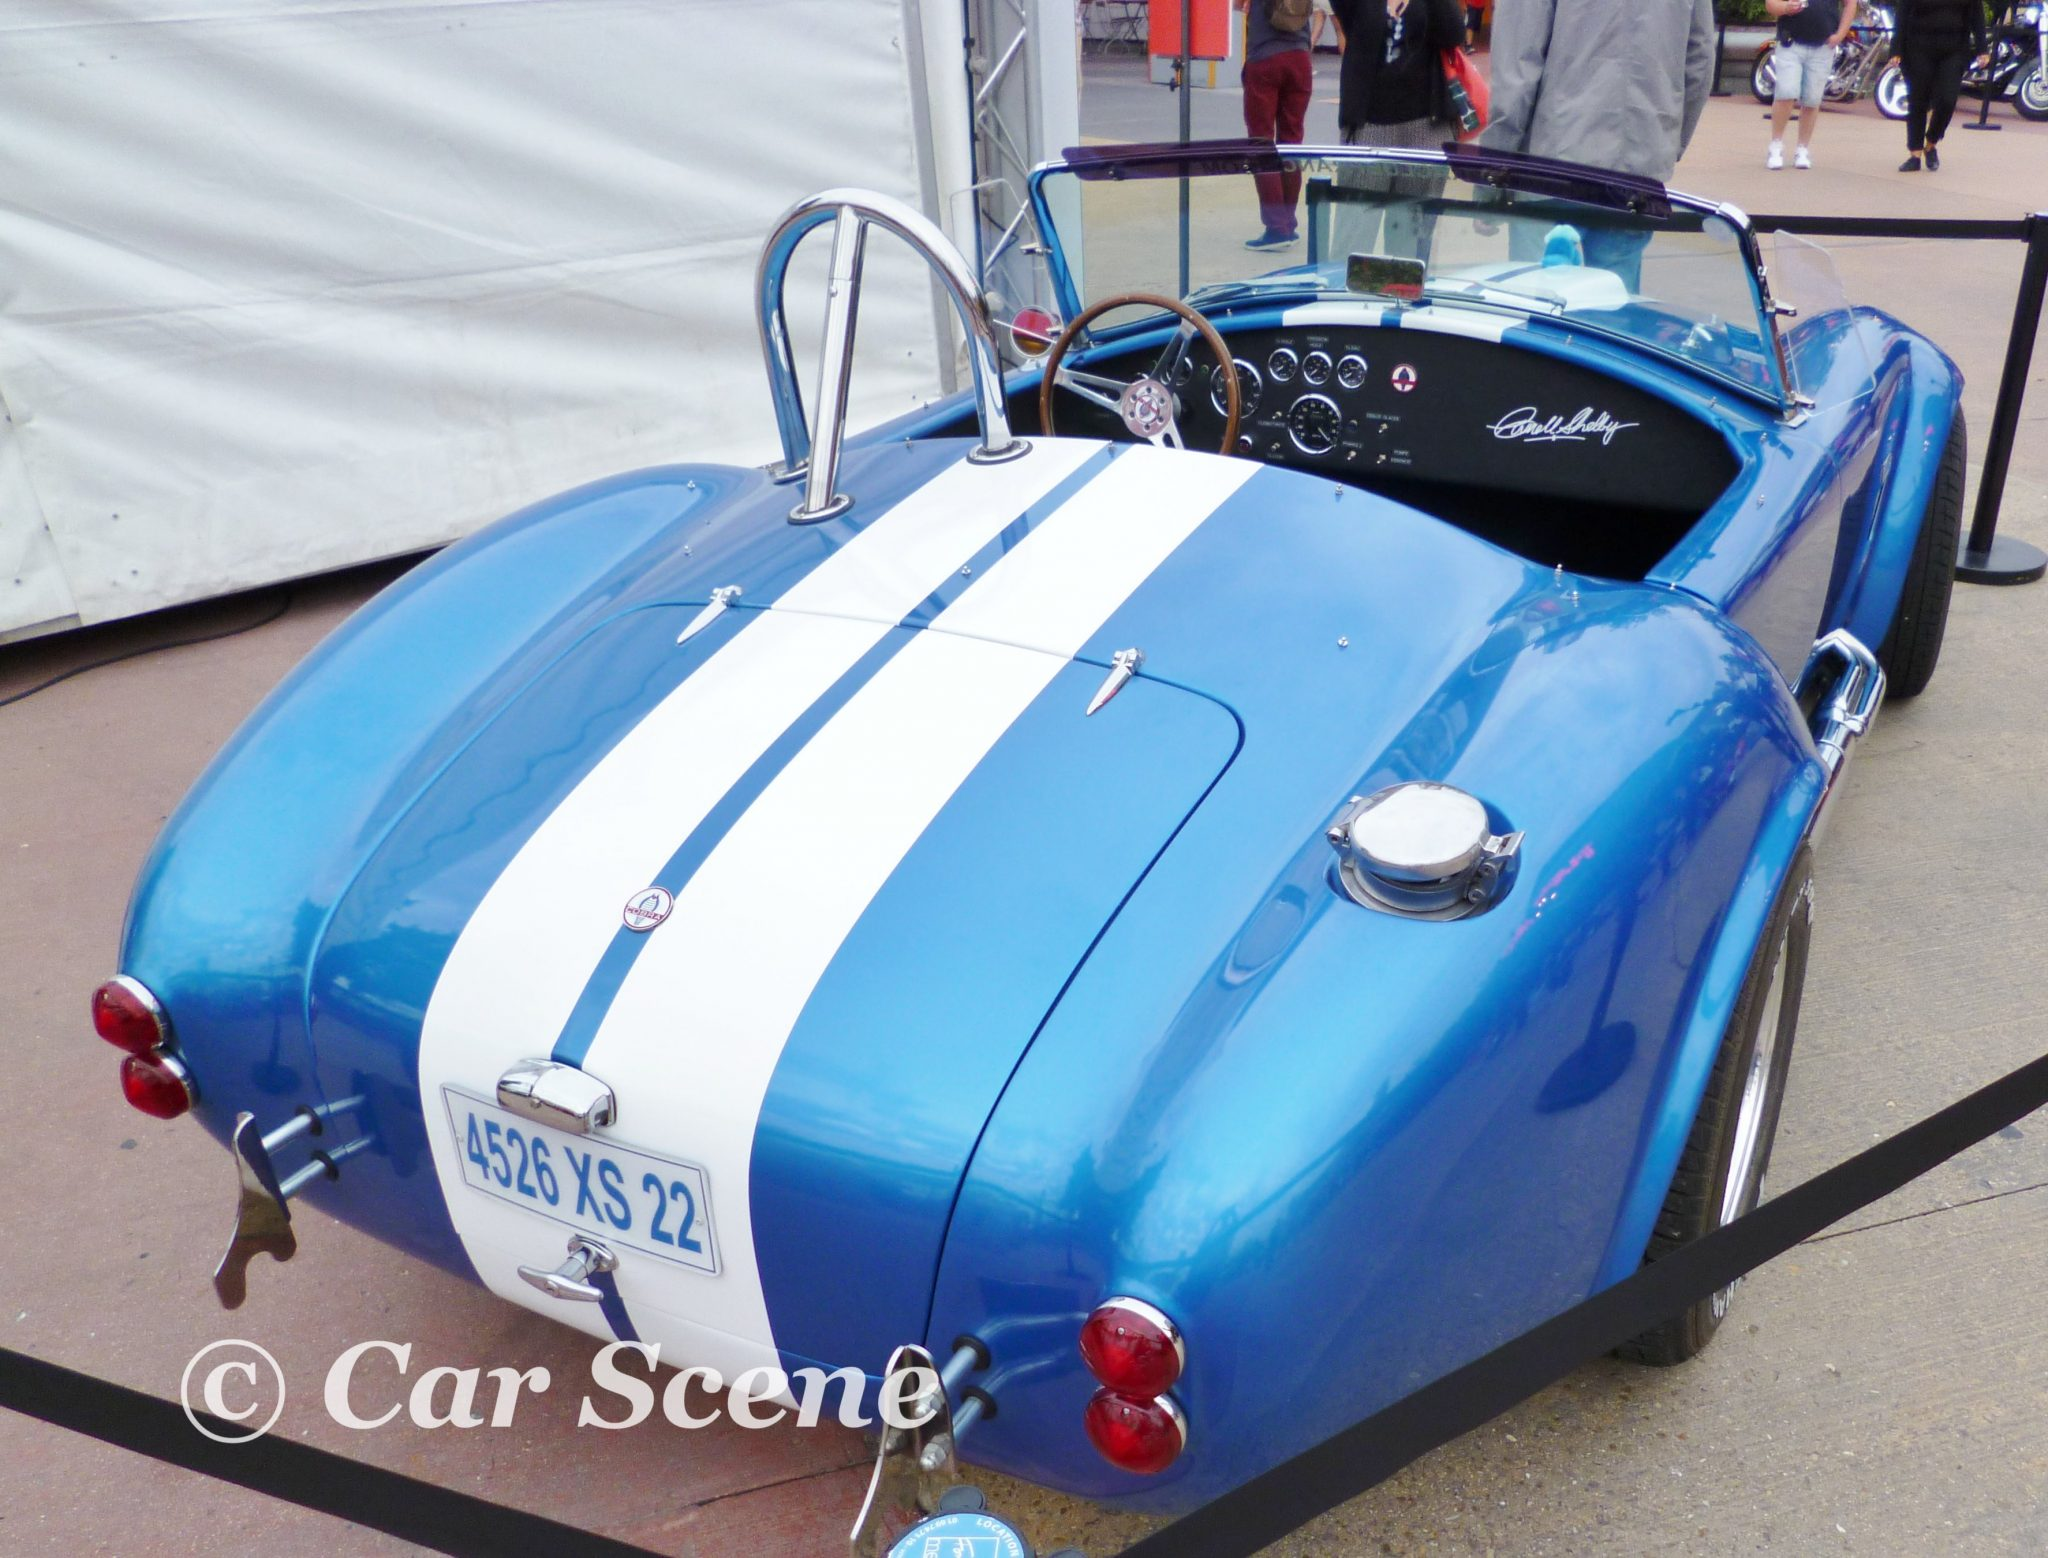 c 1966 Shelby AC Cobra (Ford 427 V8) view form rear